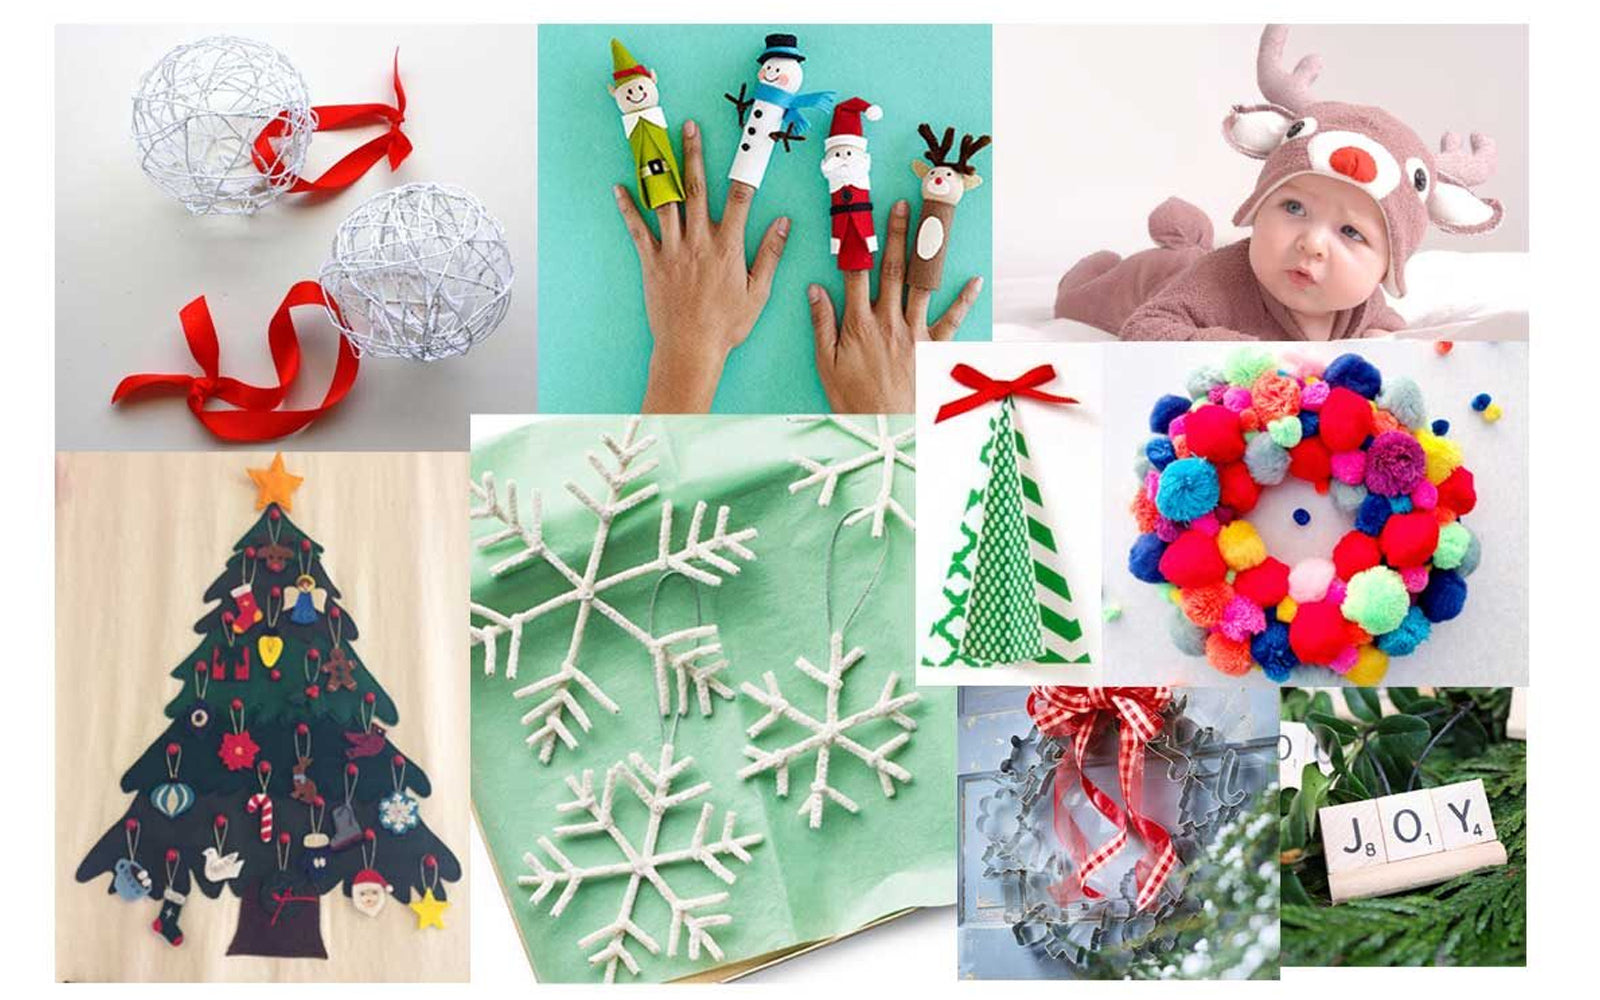 Our top 10 picks for DIY Christmas decorations and crafts